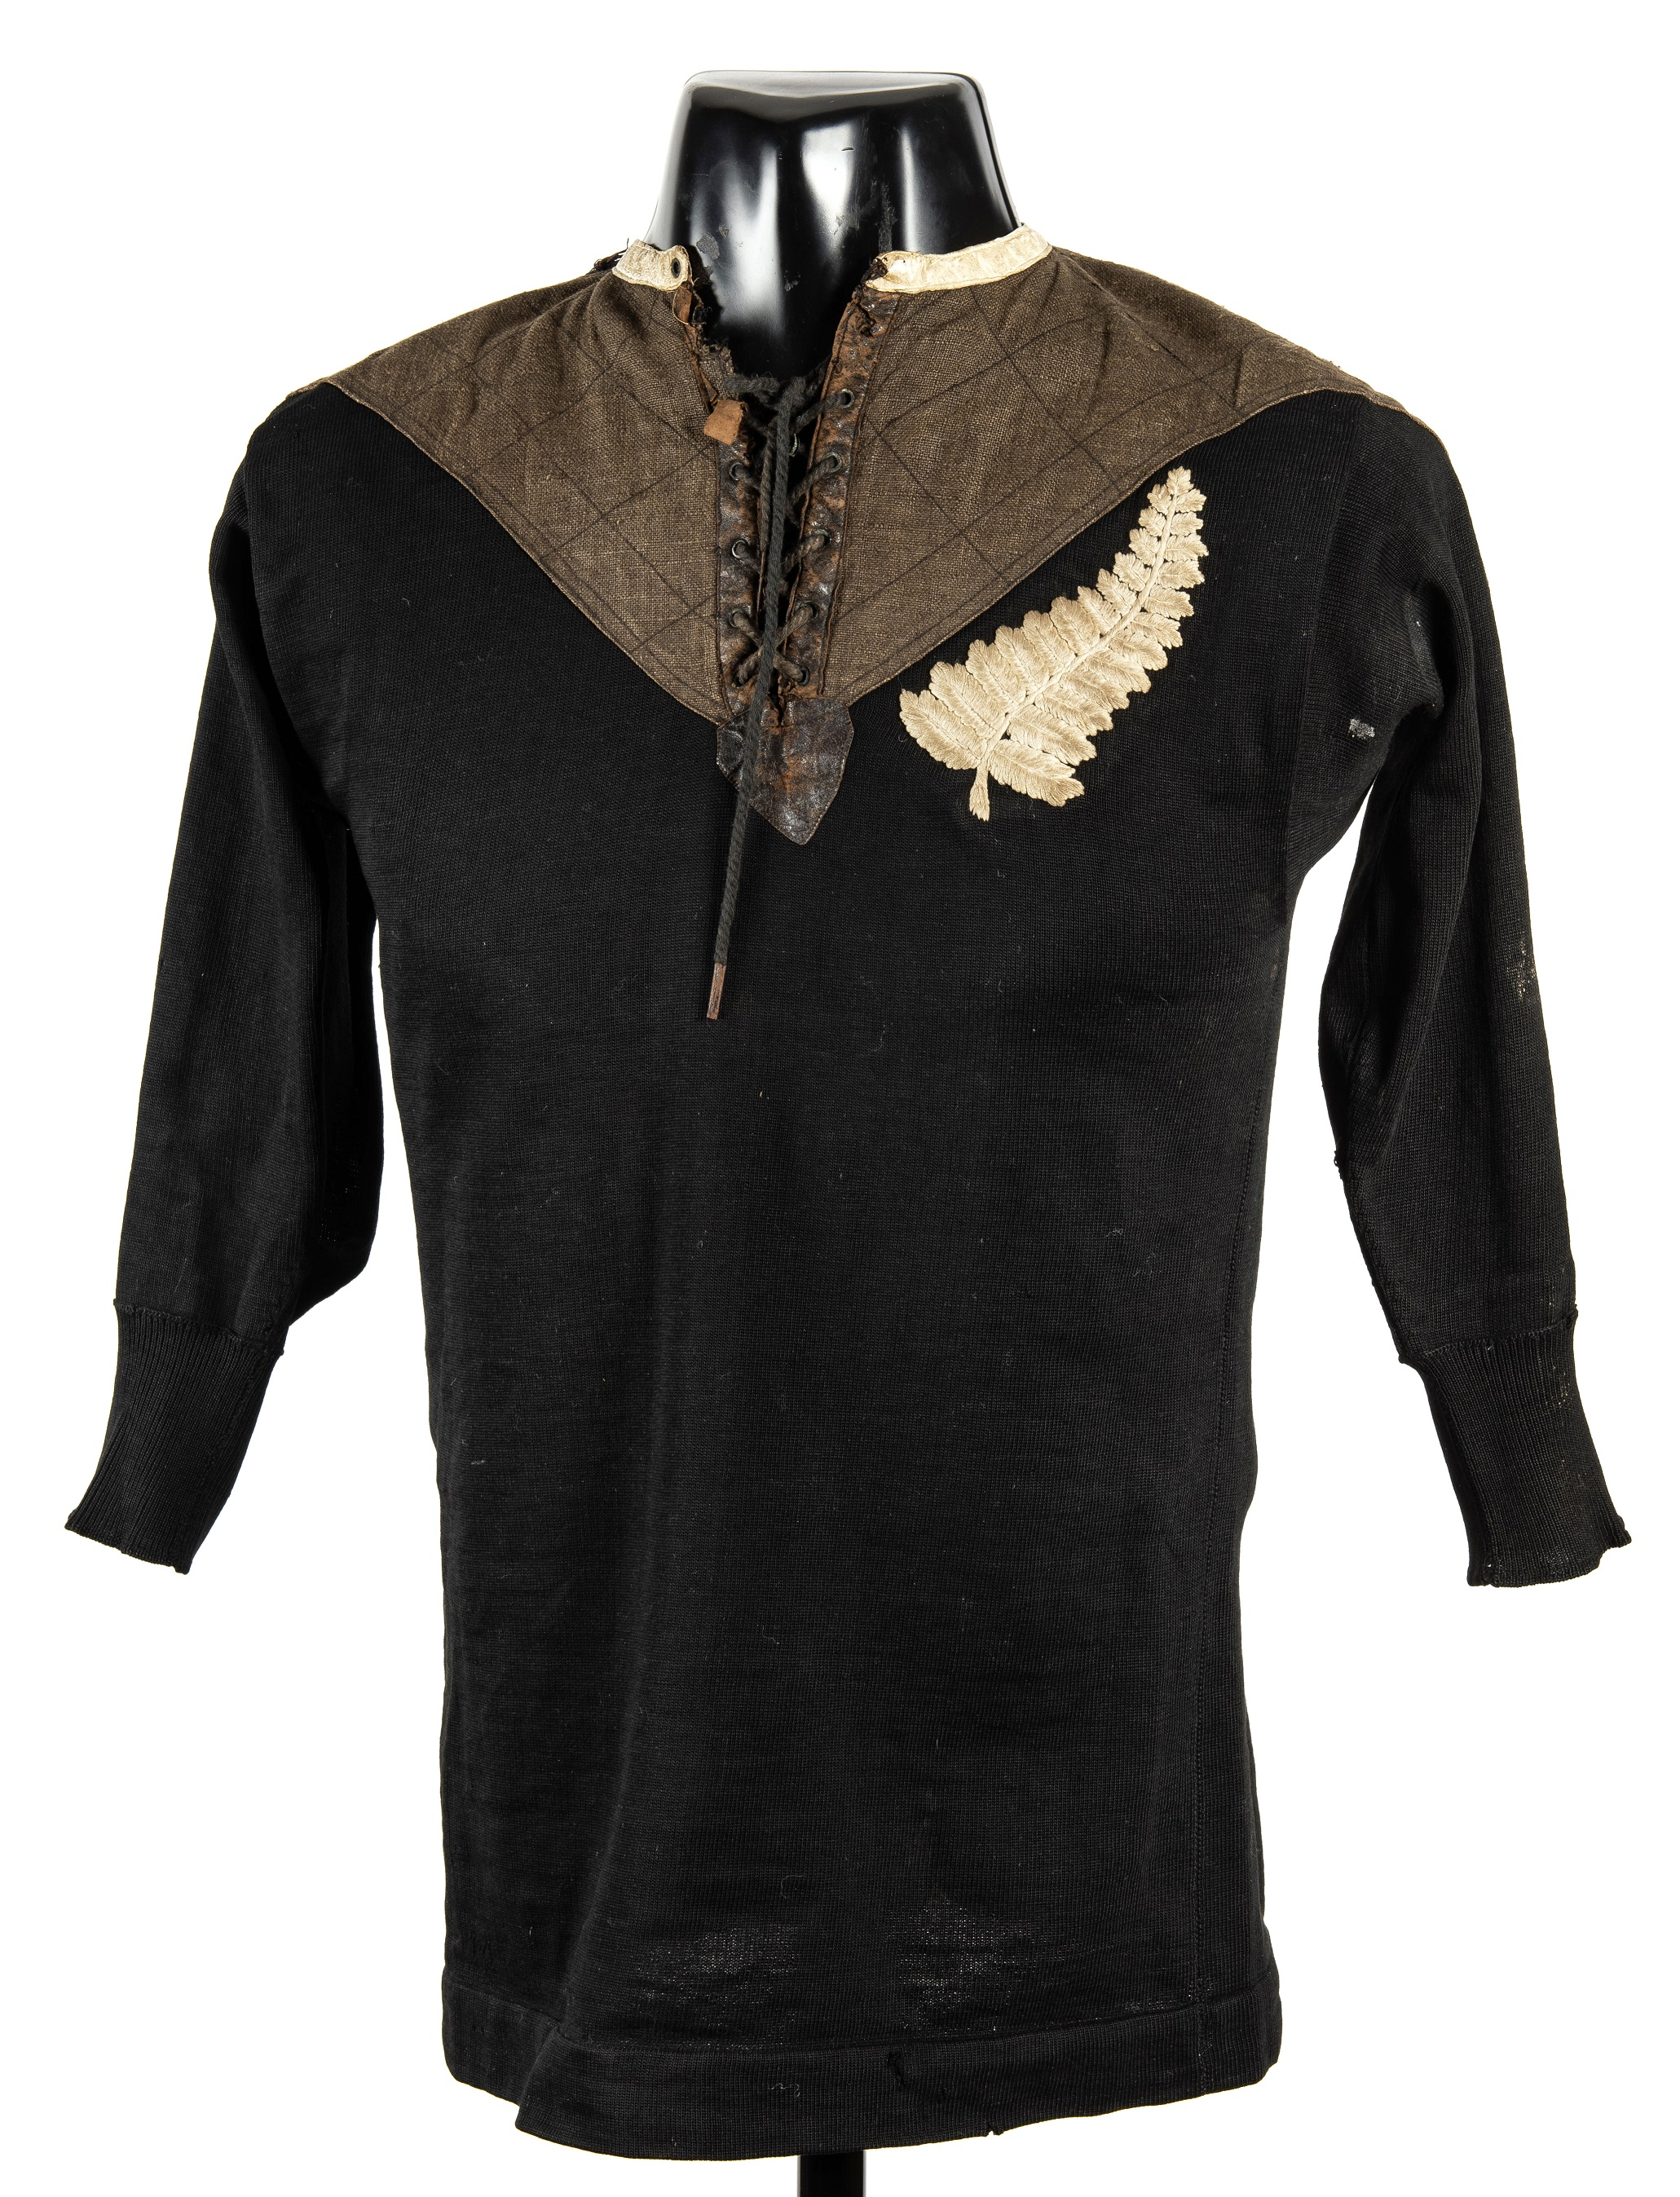 1905 - Originals All Black Jersey - New Zealand - Rugby Memorabilia Society